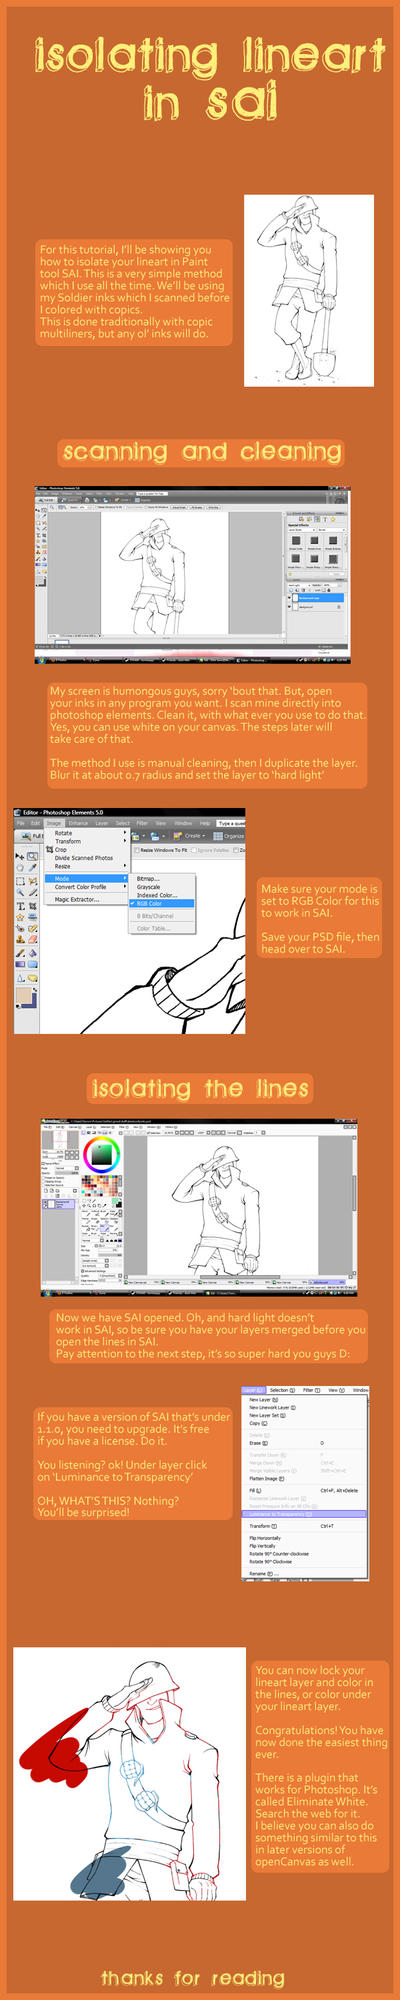 Isolating lineart in SAI by dust-bite